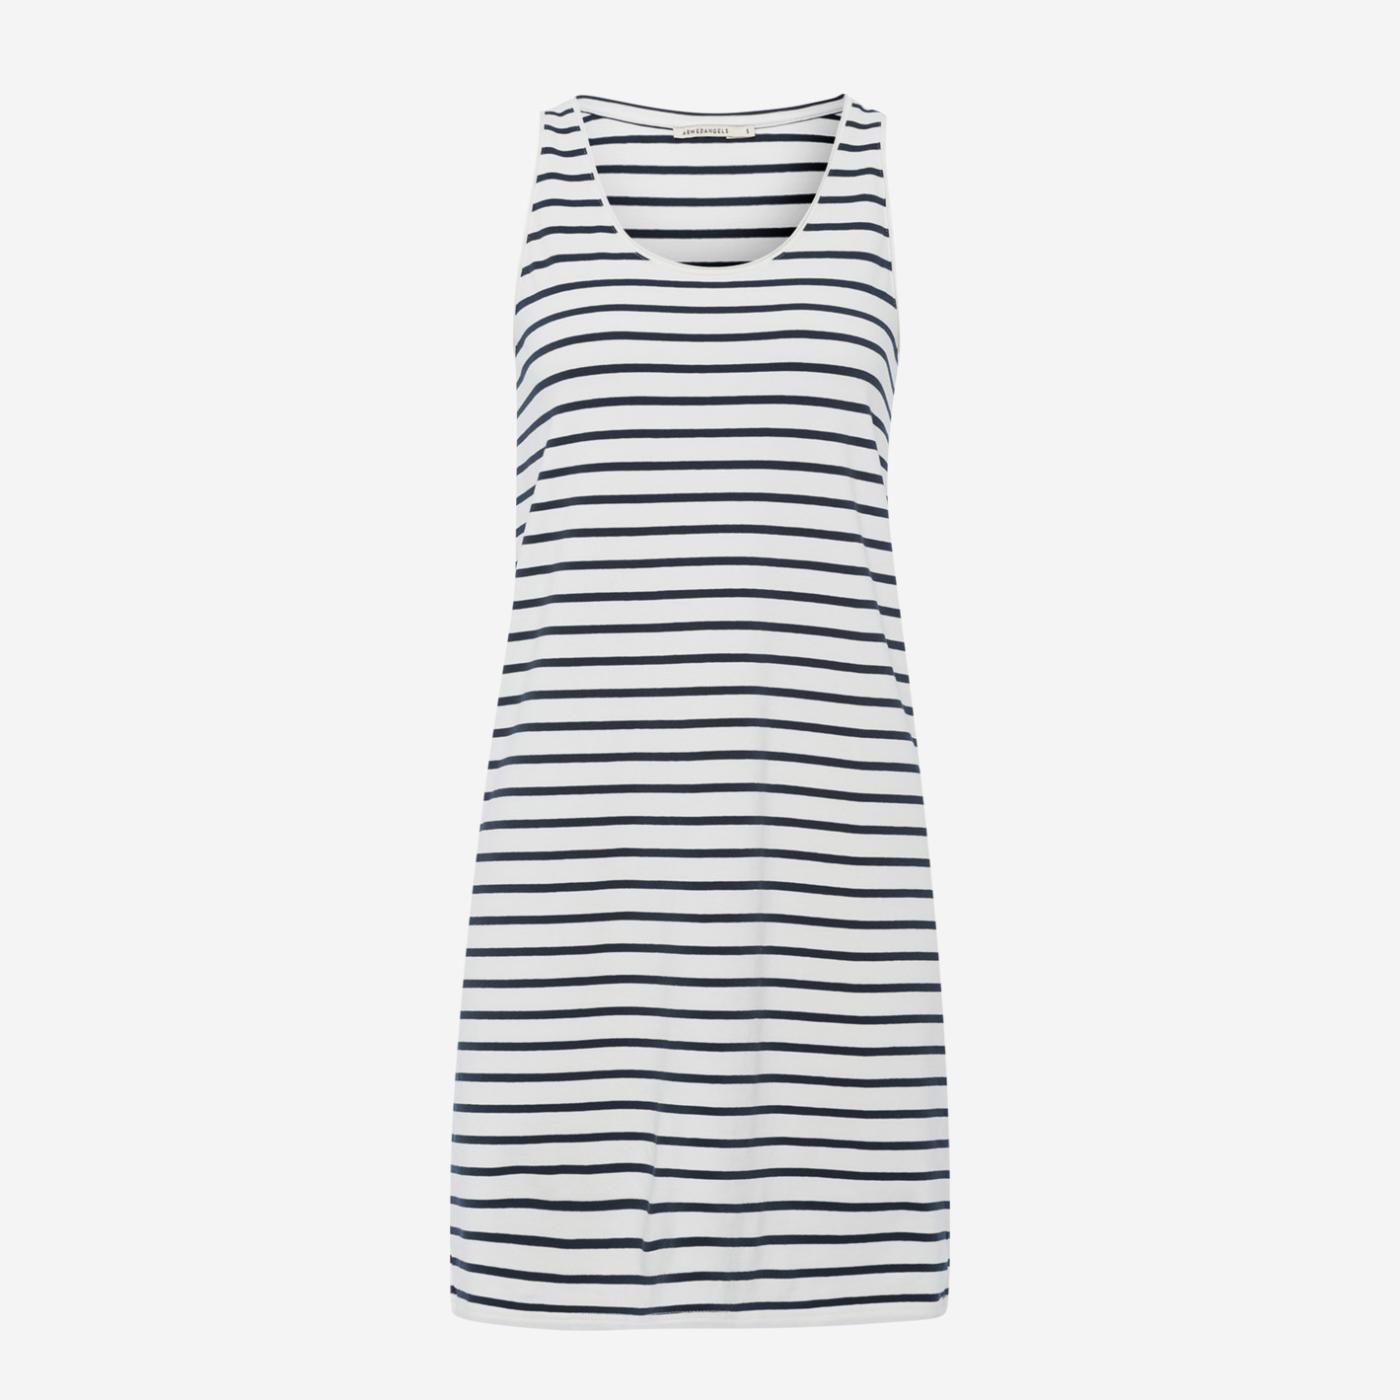 Peri classic stripes spring summer spring and summer